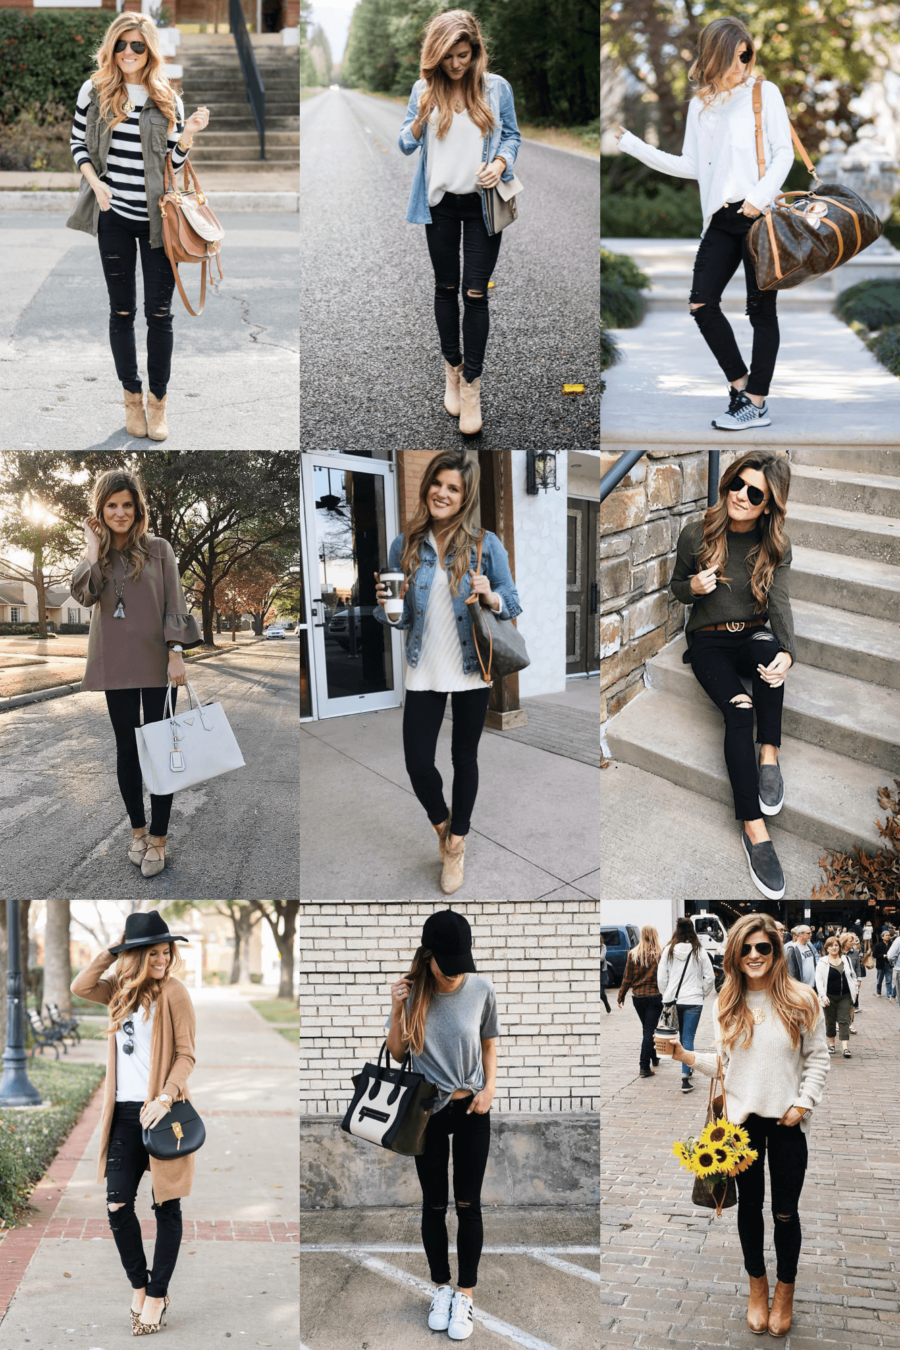 e340335db239 What to wear with black jeans - 30+ Black Jeans Outfit Ideas